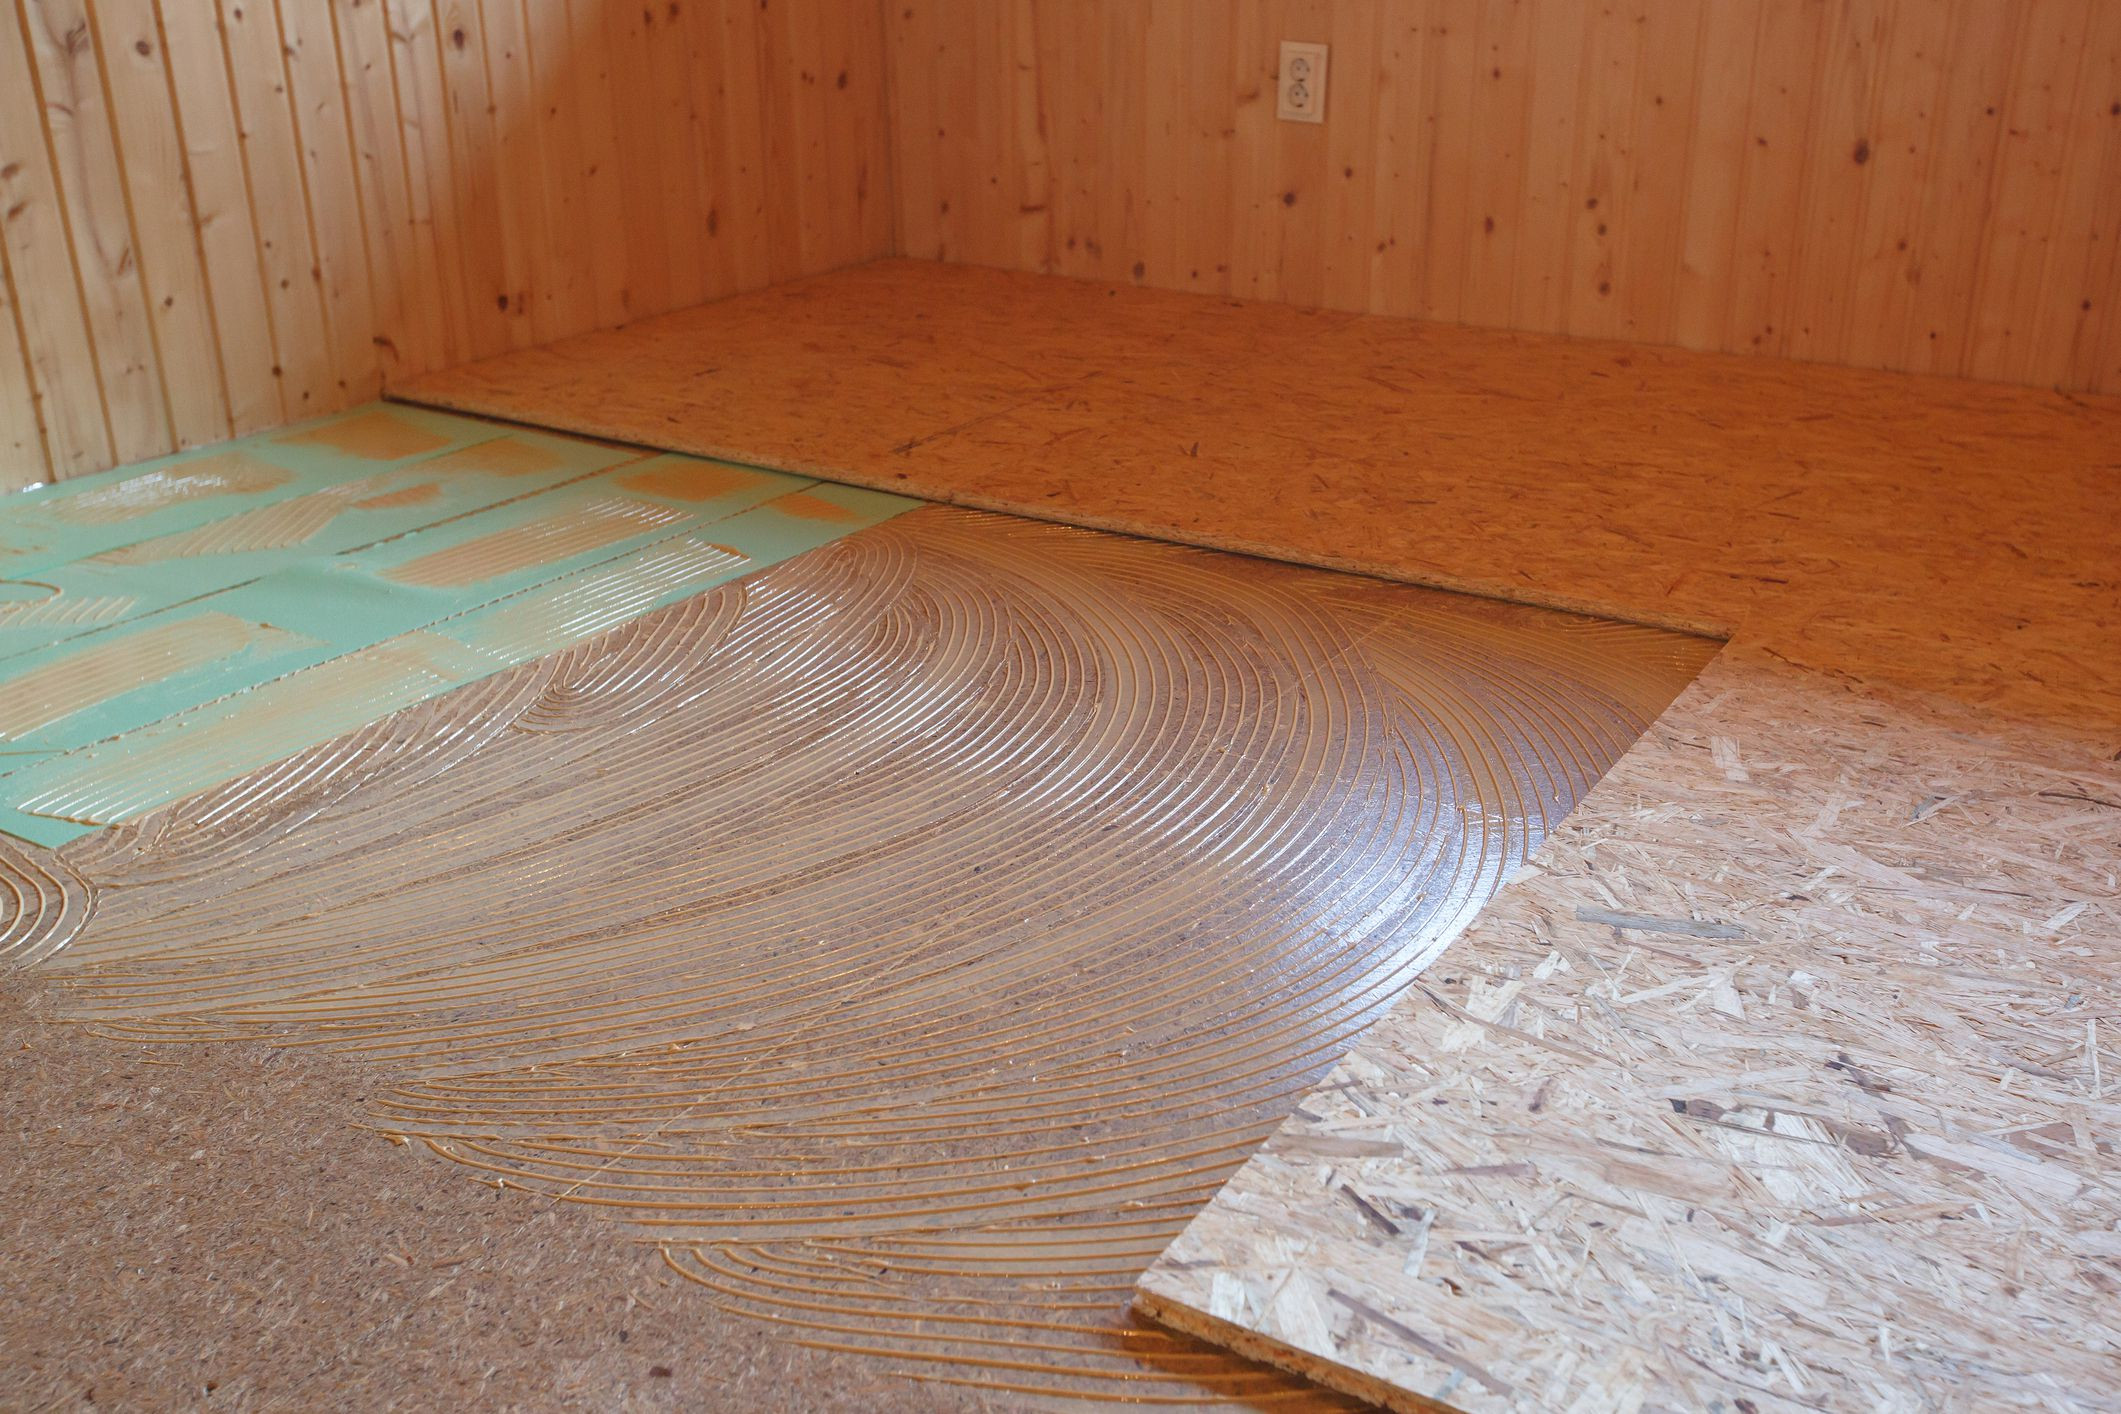 17 Popular How to Fix Squeaky Hardwood Floors 2021 free download how to fix squeaky hardwood floors of types of subfloor materials in construction projects intended for gettyimages 892047030 5af5f46fc064710036eebd22